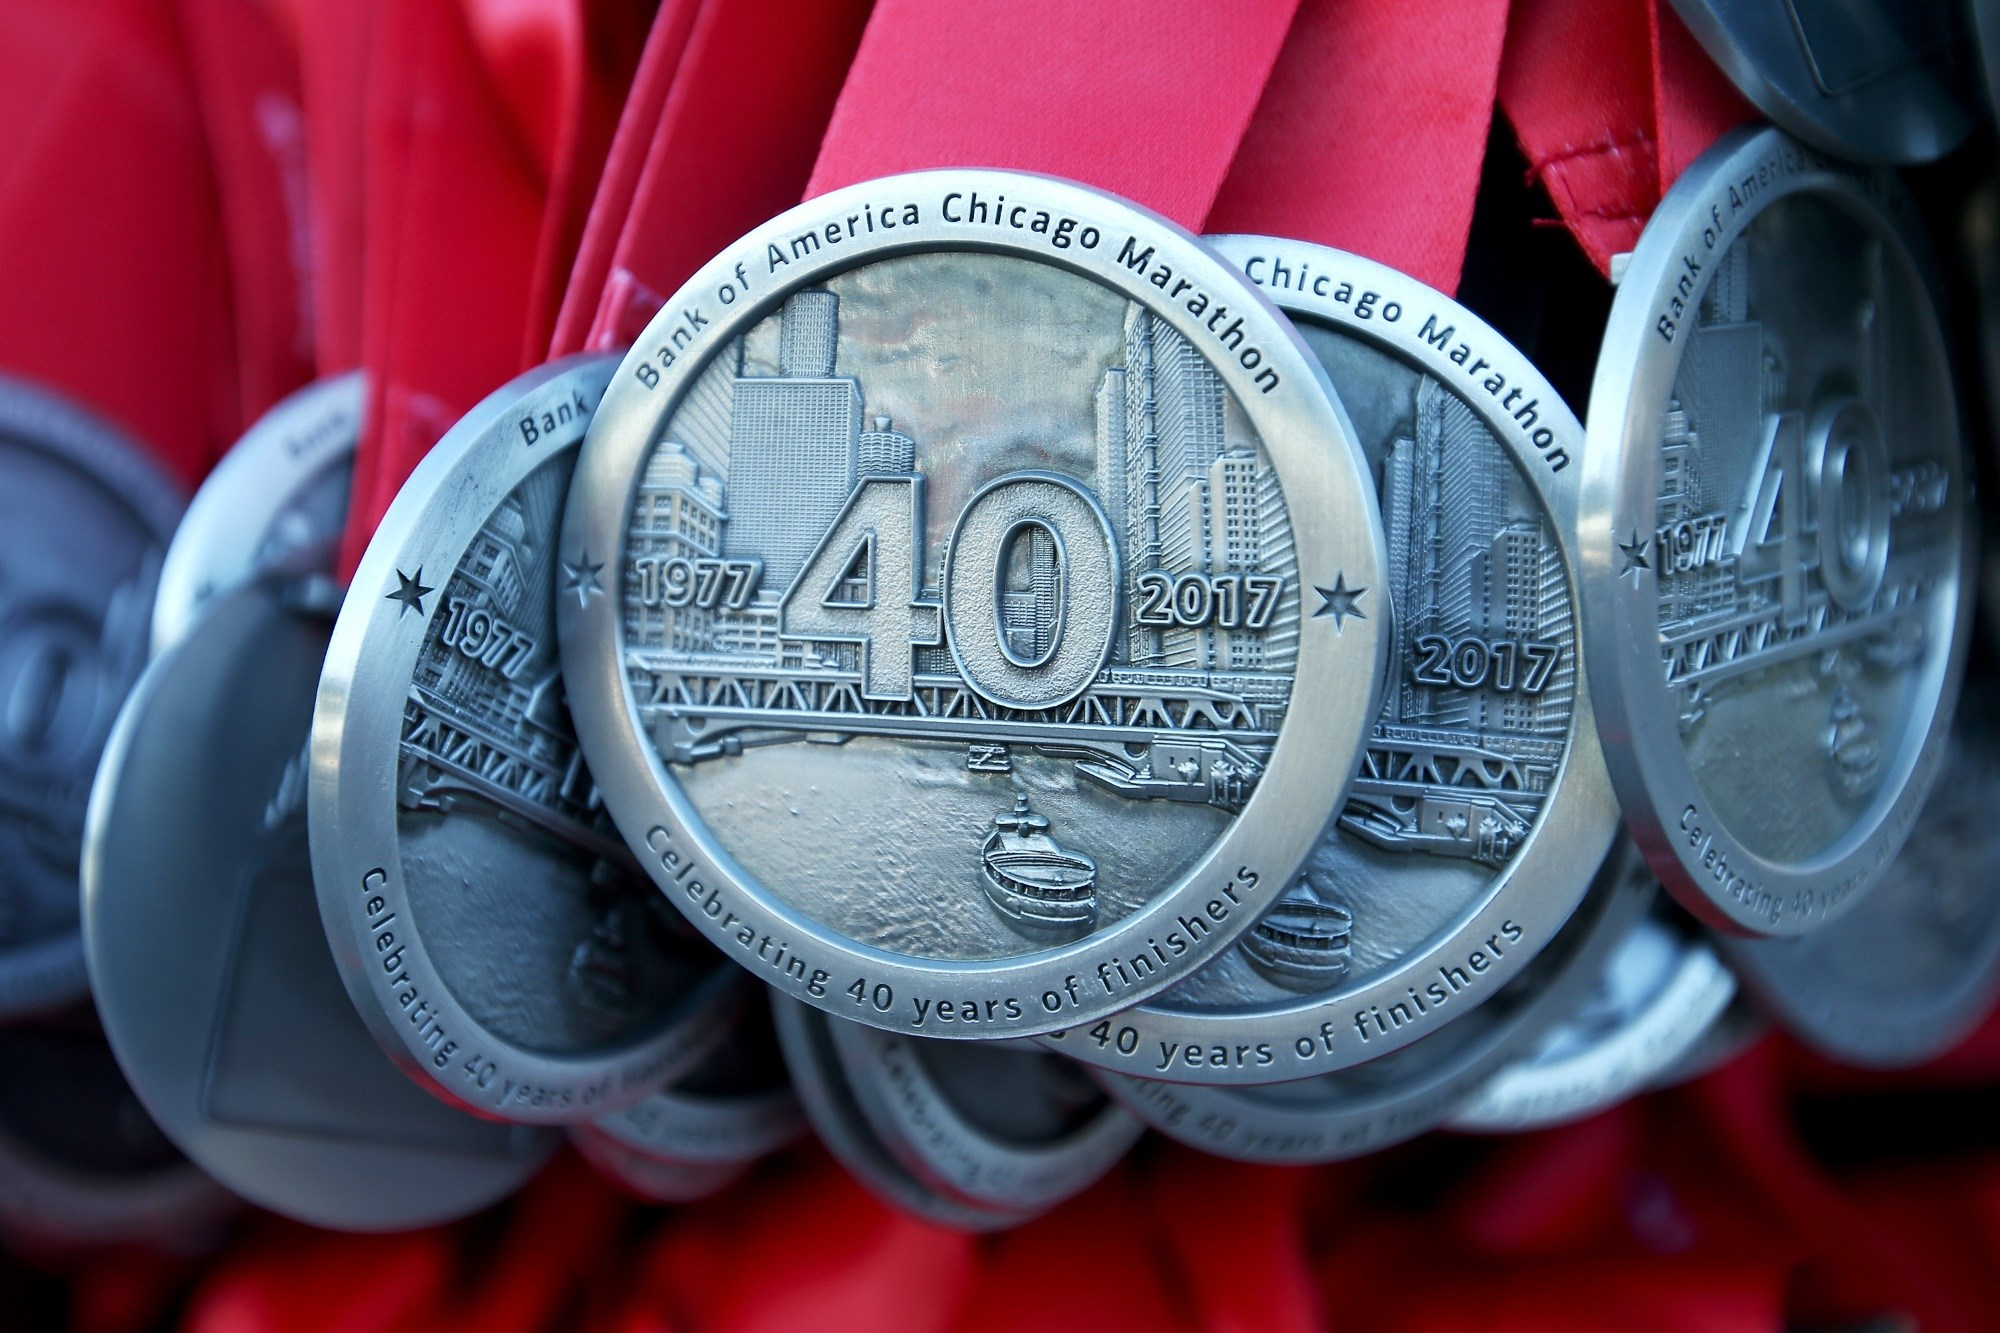 Making a Run for It With George Chiampas, DO, Chicago Marathon Medical Director